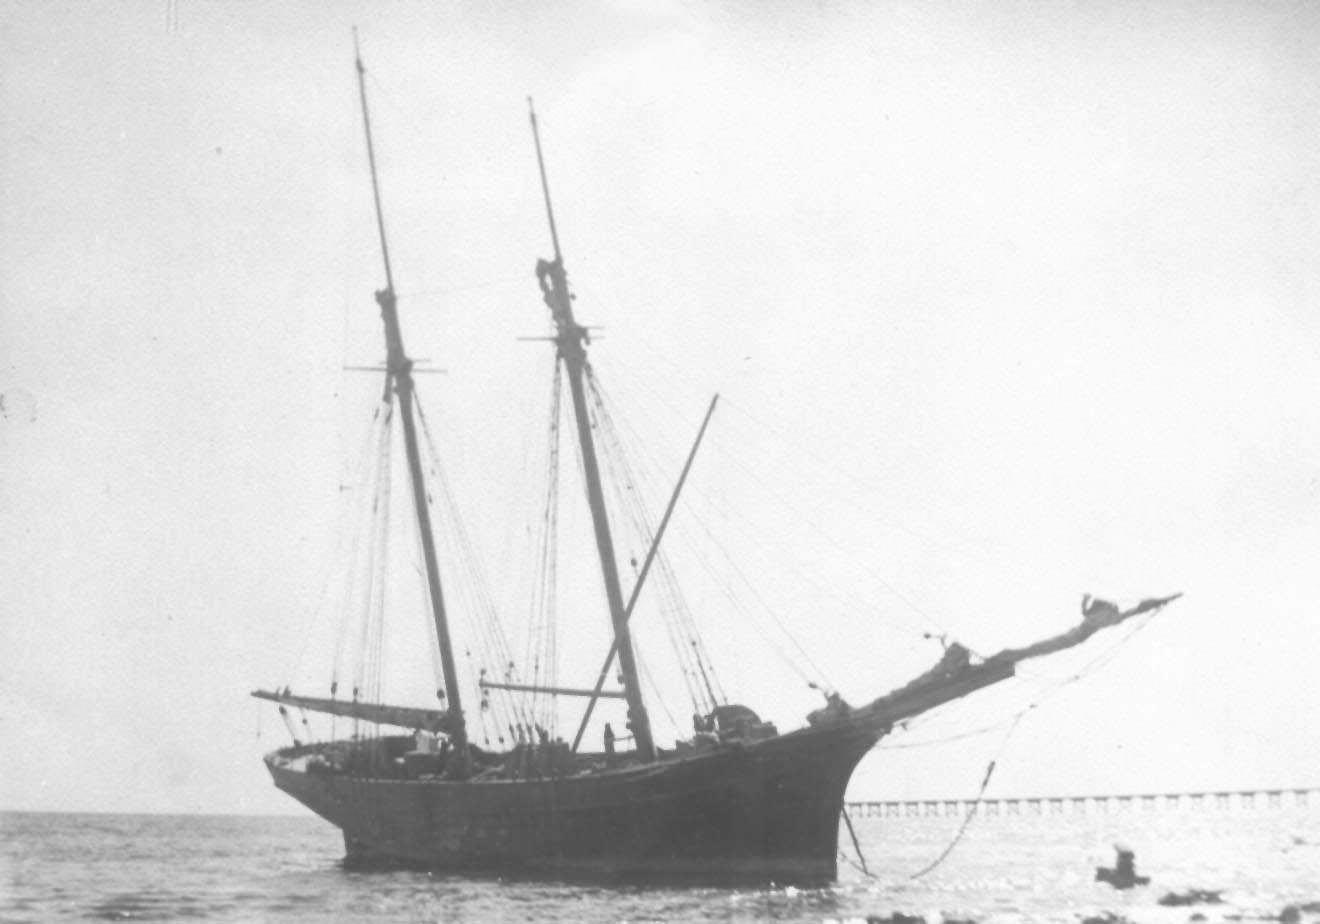 2 masted schooner, built in 1874 by John Lowen, Port Adelaide.  Vessel has 1 deck a round stern and is carvel built.  Owned by John Kuhl & Partners, vessel foundered inSt Vincent' sGulf on Dec 15 1876 and was subsequently raised, repaired and re-registere